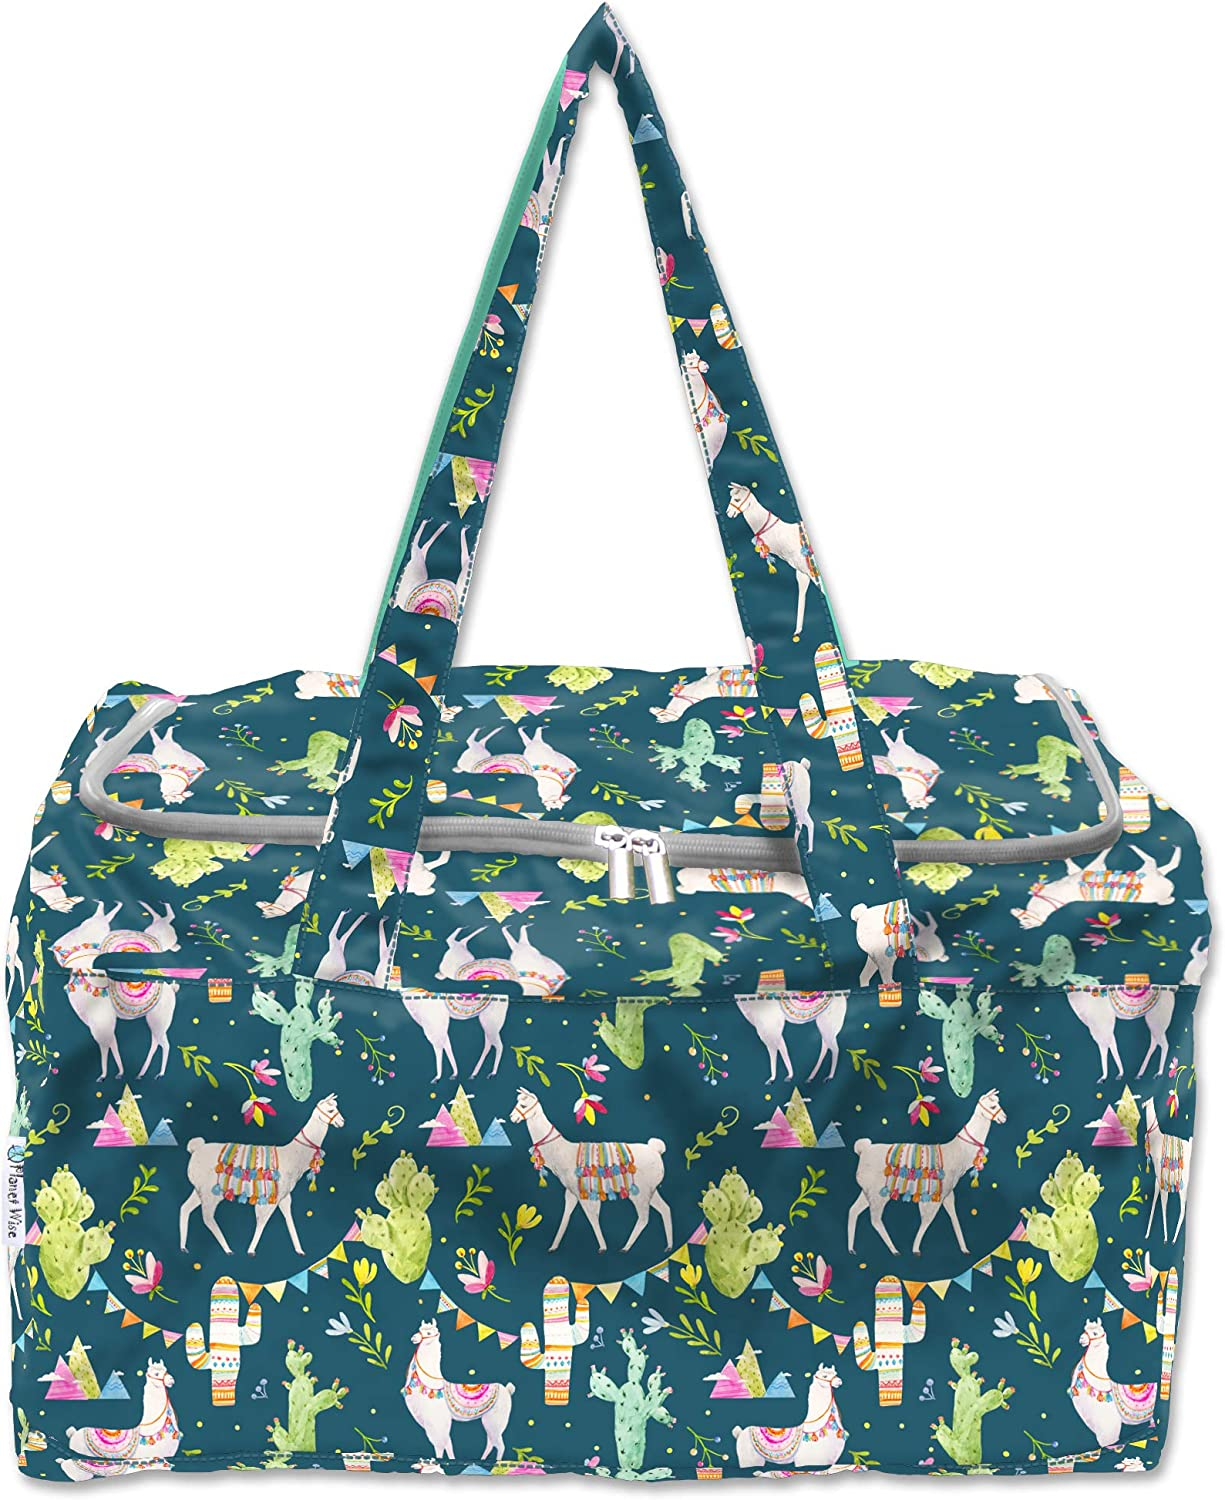 Watermelon Patch Planet Wise Travel Oh Lily Overnight Duffle Bag